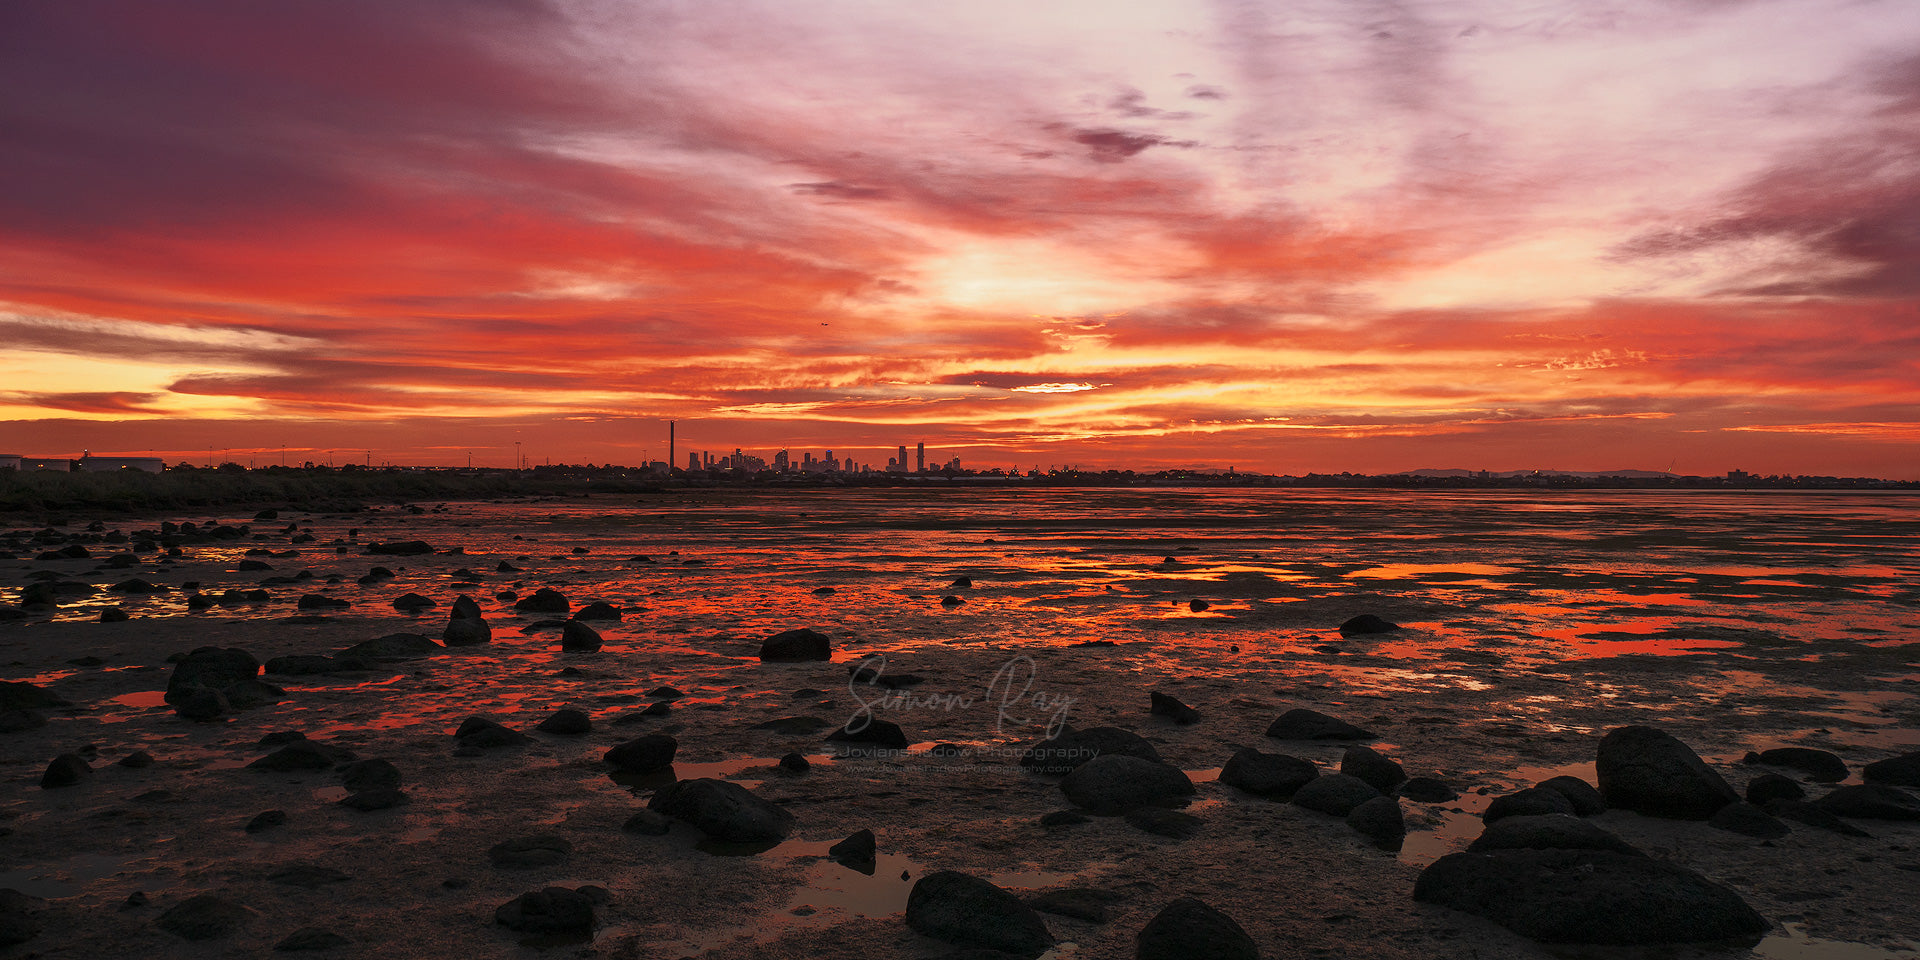 Fiery red sunrise over the Melbourne skyline during low tide at Altona Dog Beach. Australian Landscape Photography.